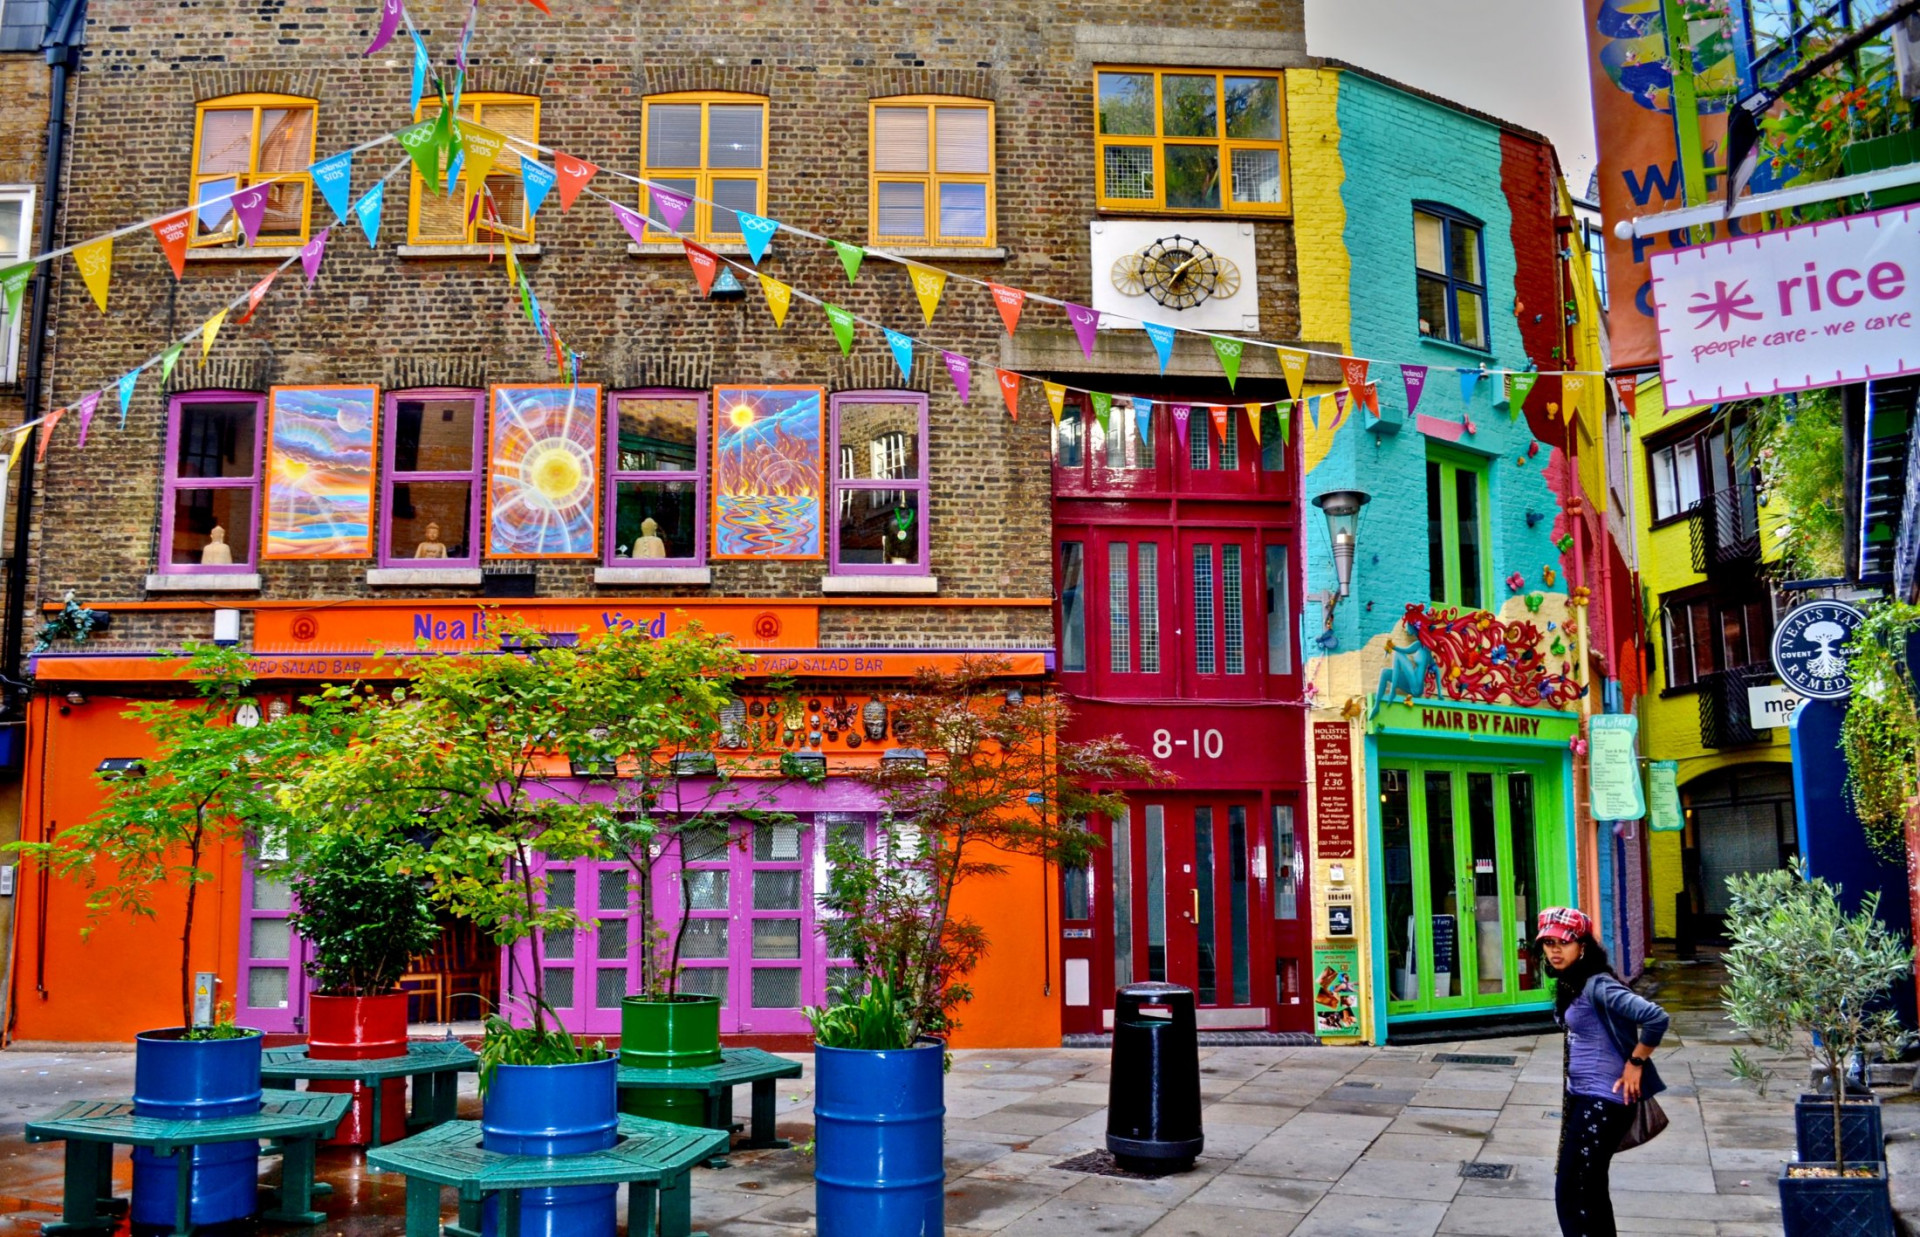 neals-yard-london-uk